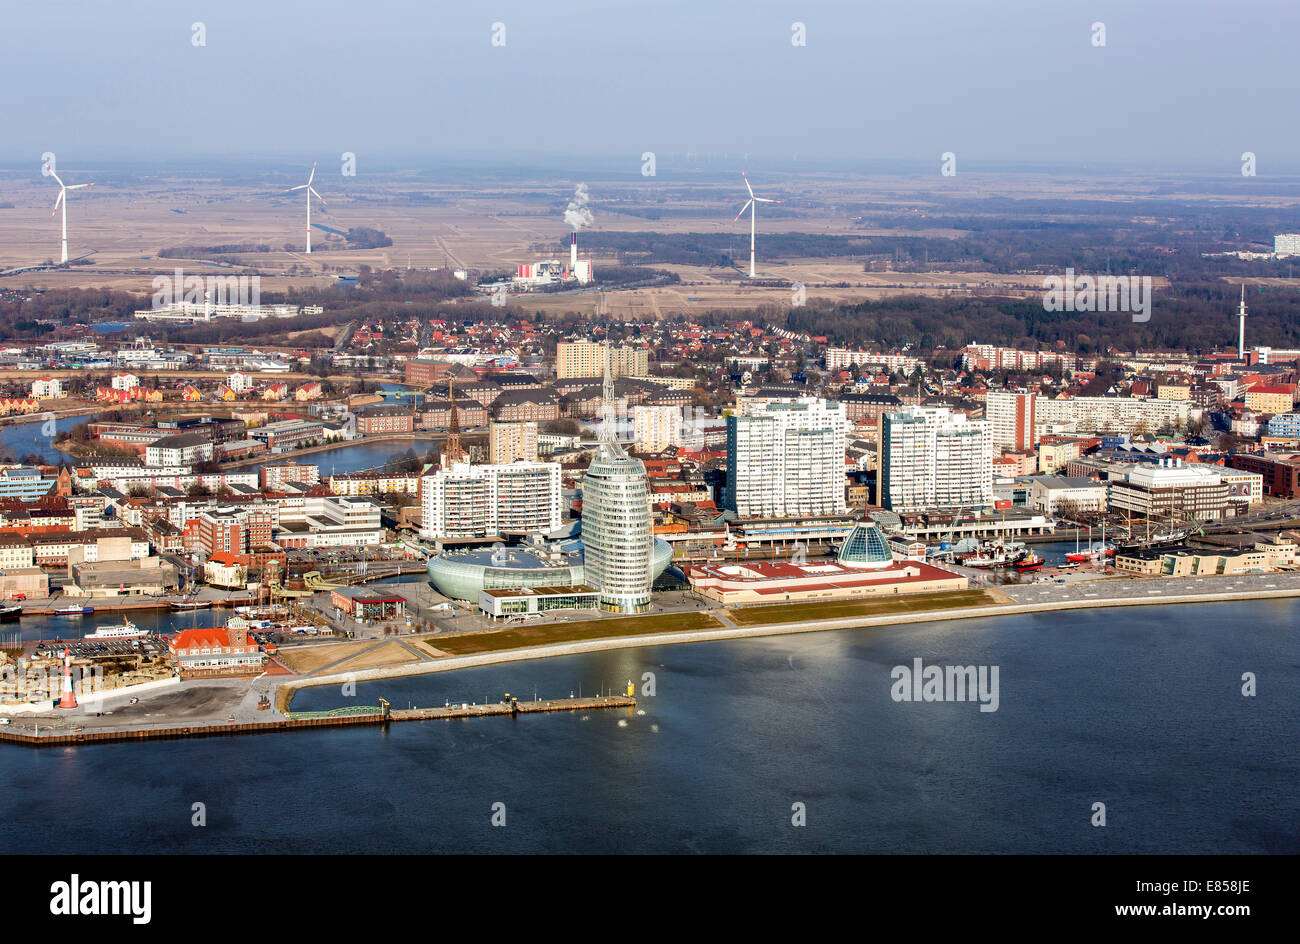 Mediterraneo shopping centre, Atlantic Hotel Sail City, Klimahaus Bremerhaven, Columbus Center, Havenwelten, Weser - Stock Image